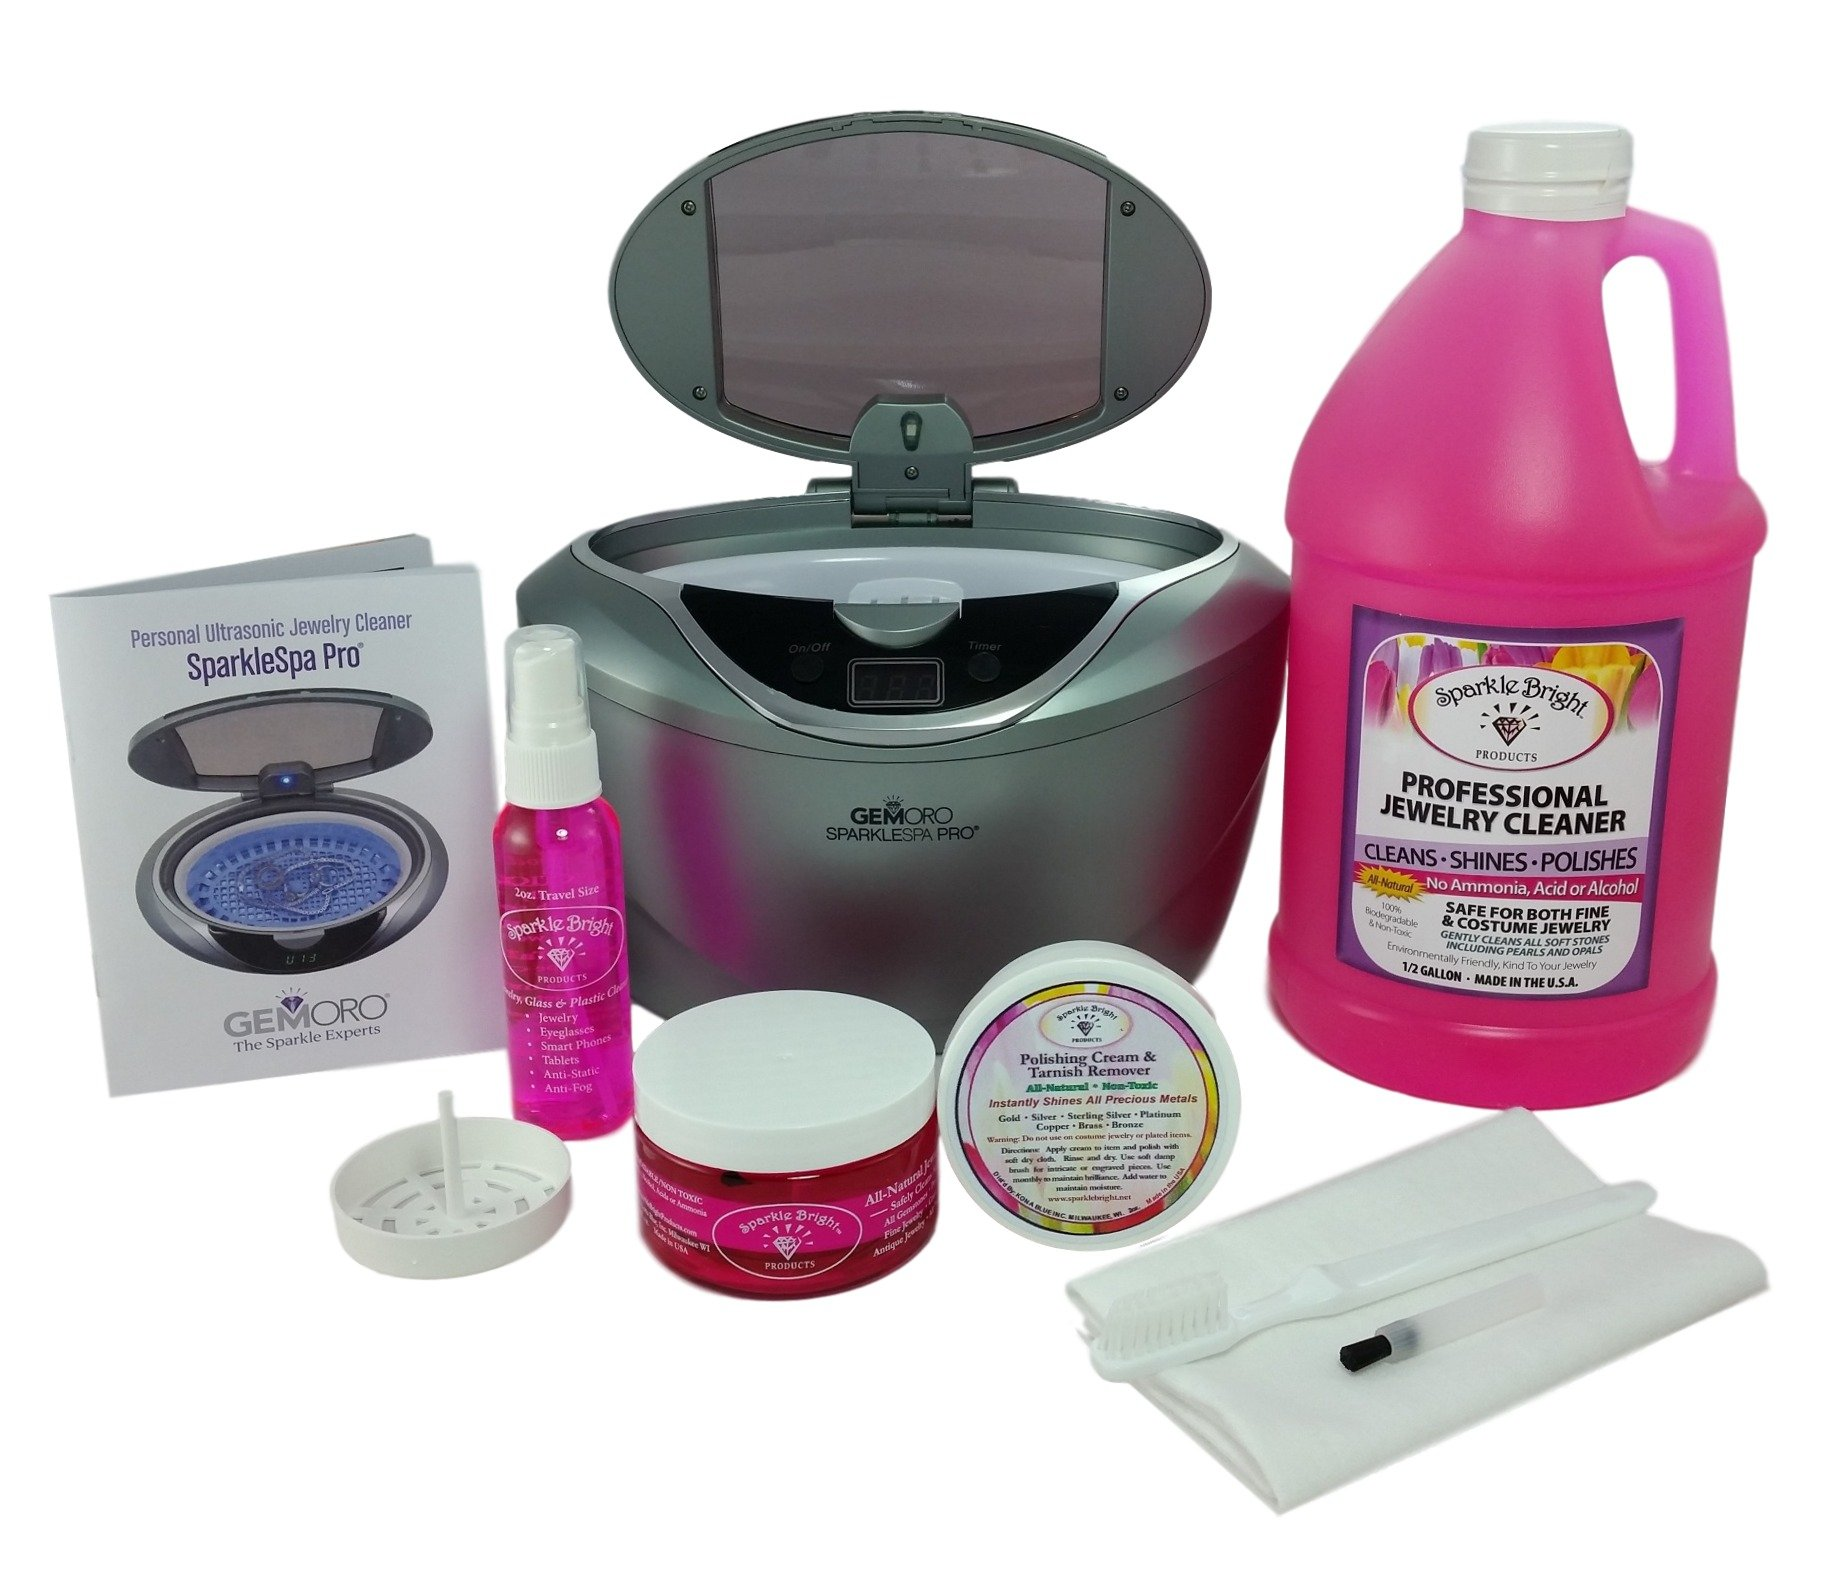 GEMORO 1791 SPARKLE SPA PRO SLATE GRAY ULTRASONIC LUXURY JEWELRY CLEANING KIT Includes Sparkle Bright All-Natural Jewelry Cleaner Products by Sparkle Bright Products